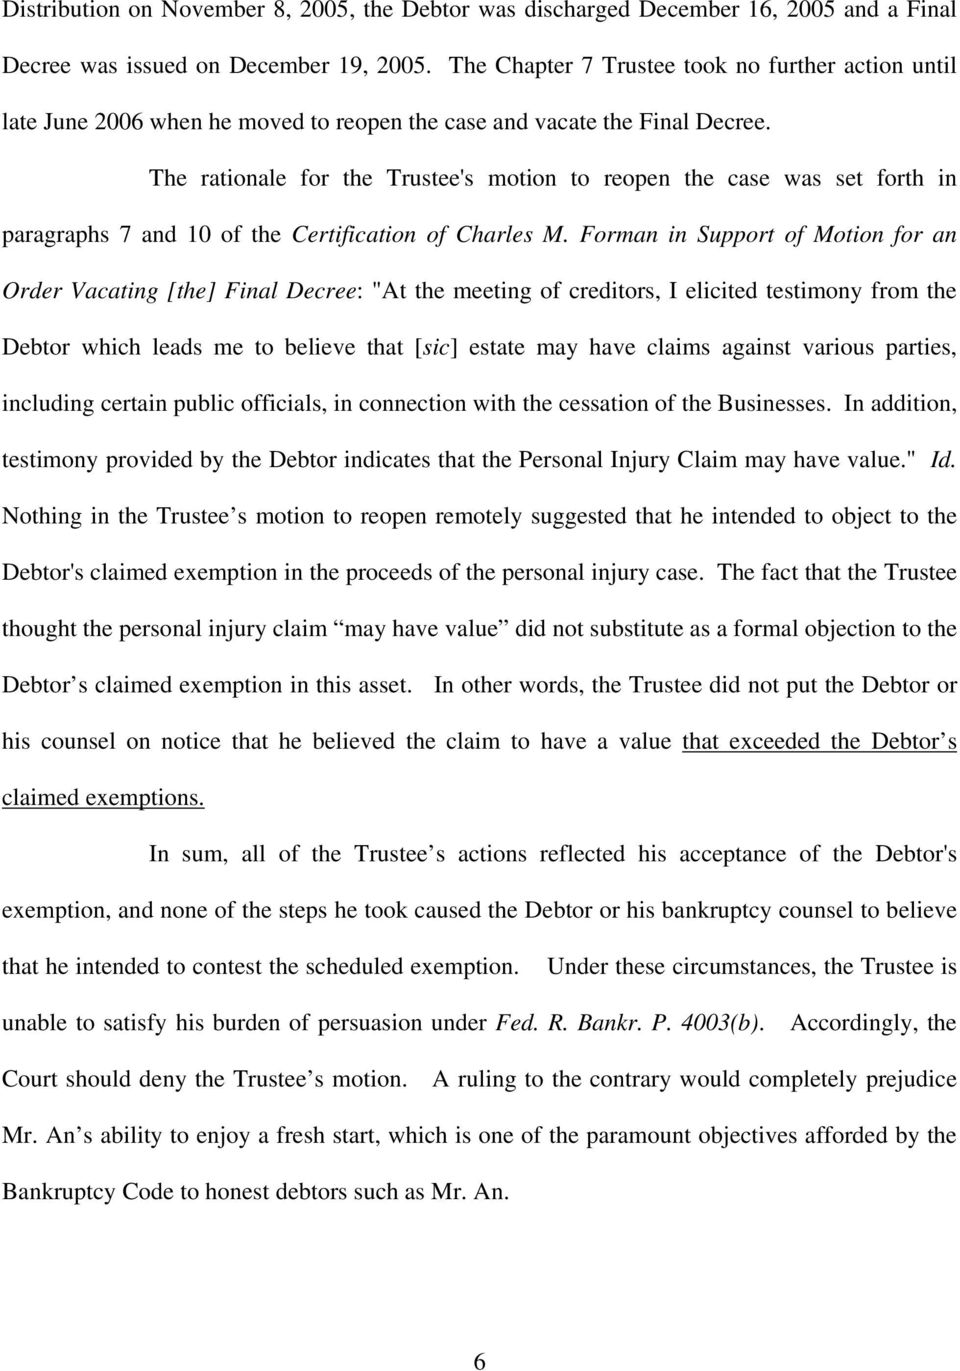 The rationale for the Trustee's motion to reopen the case was set forth in paragraphs 7 and 10 of the Certification of Charles M.